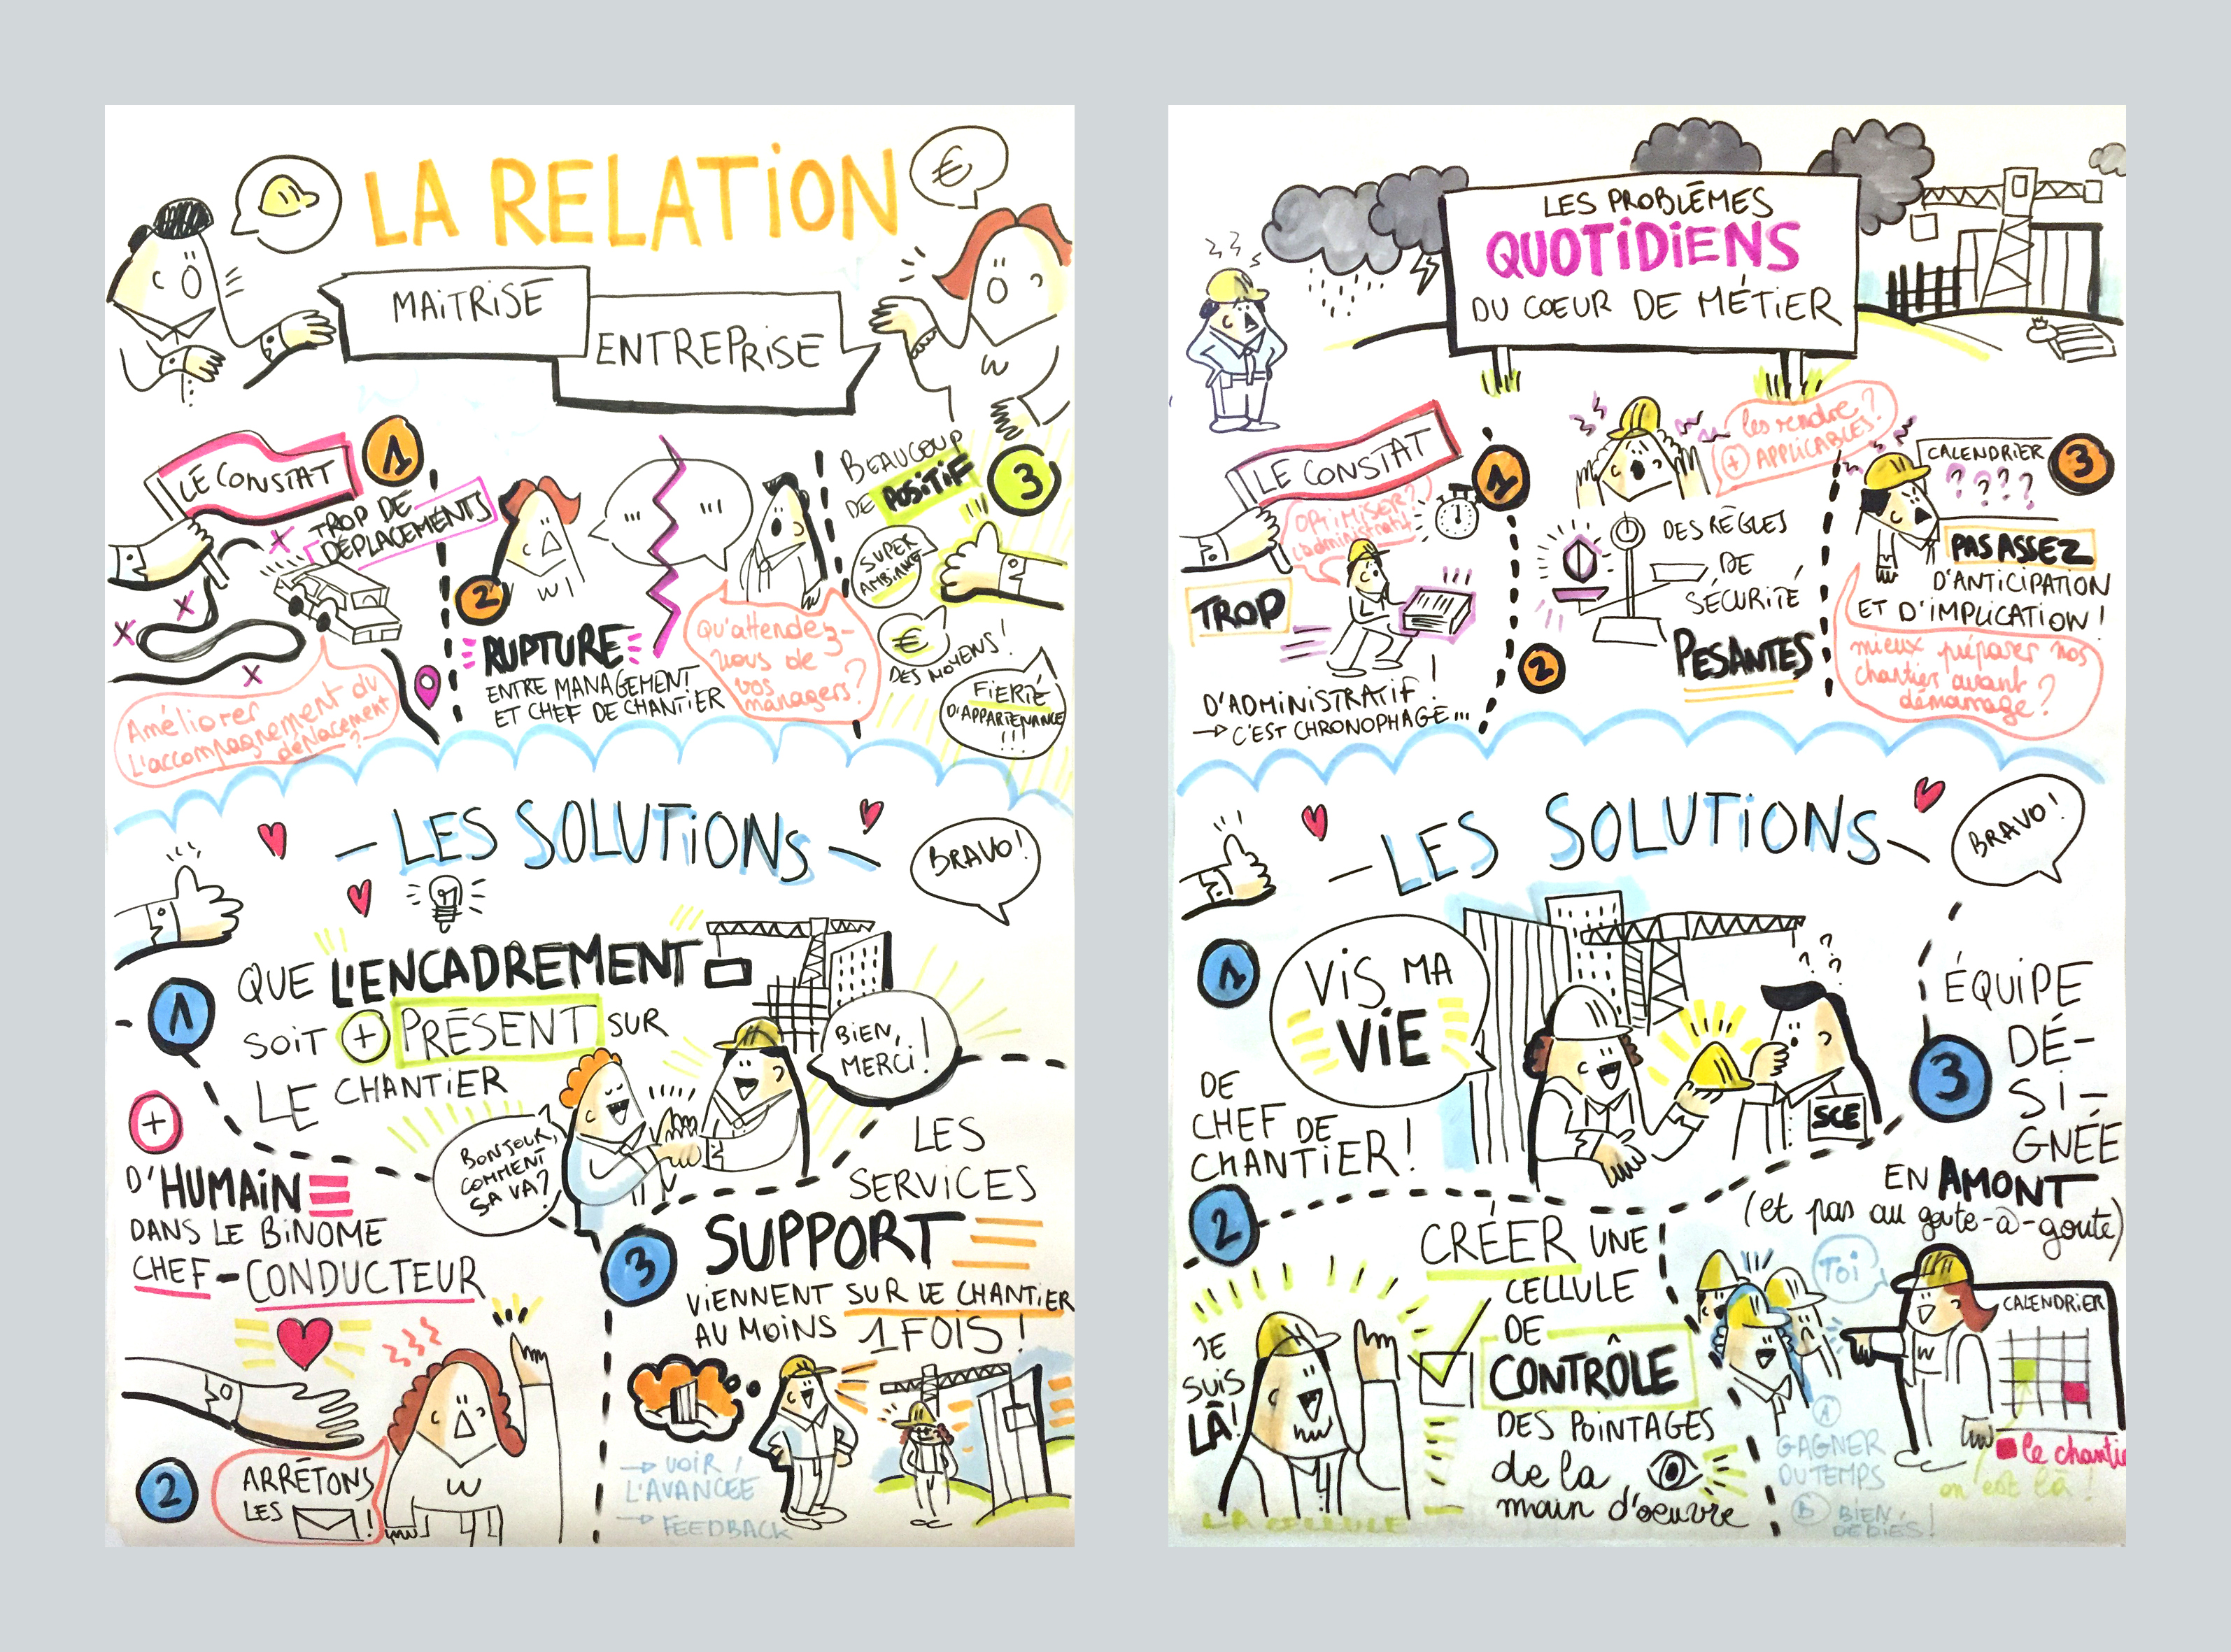 Facilitation Bouygues Construction